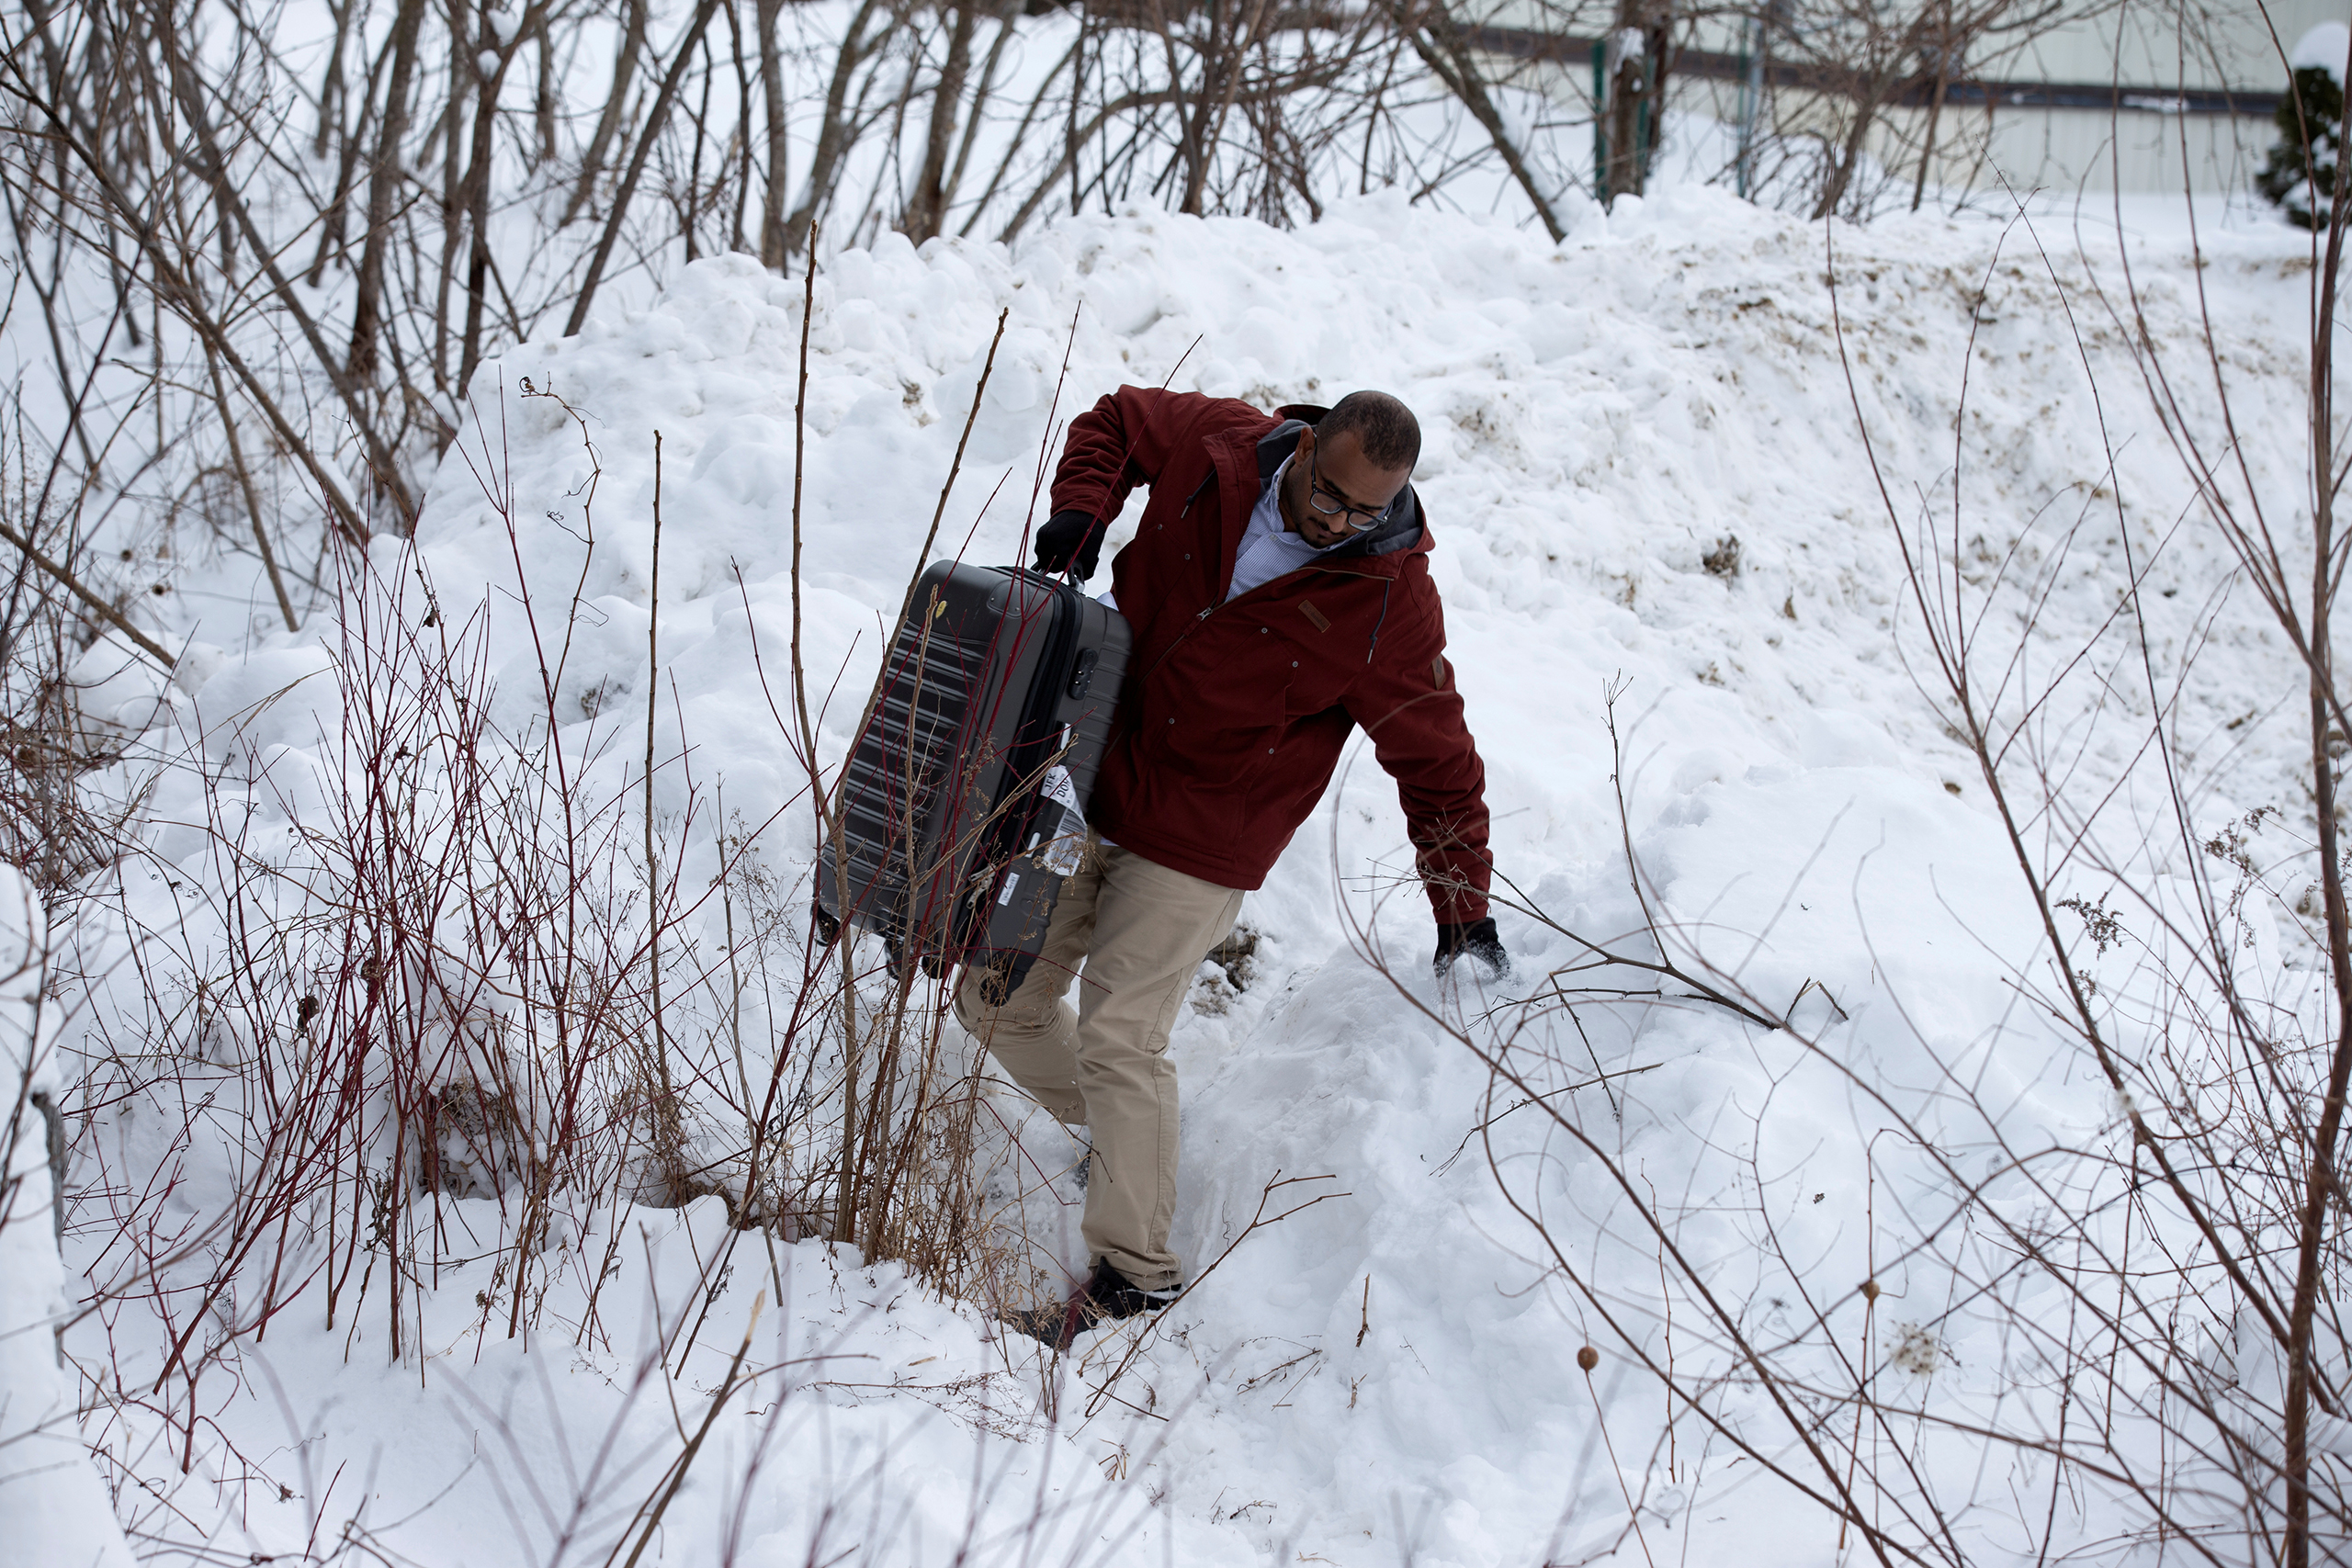 A man from Yemen attempts to cross the U.S.-Canada border into Hemmingford, Quebec, on Feb. 14, 2017.